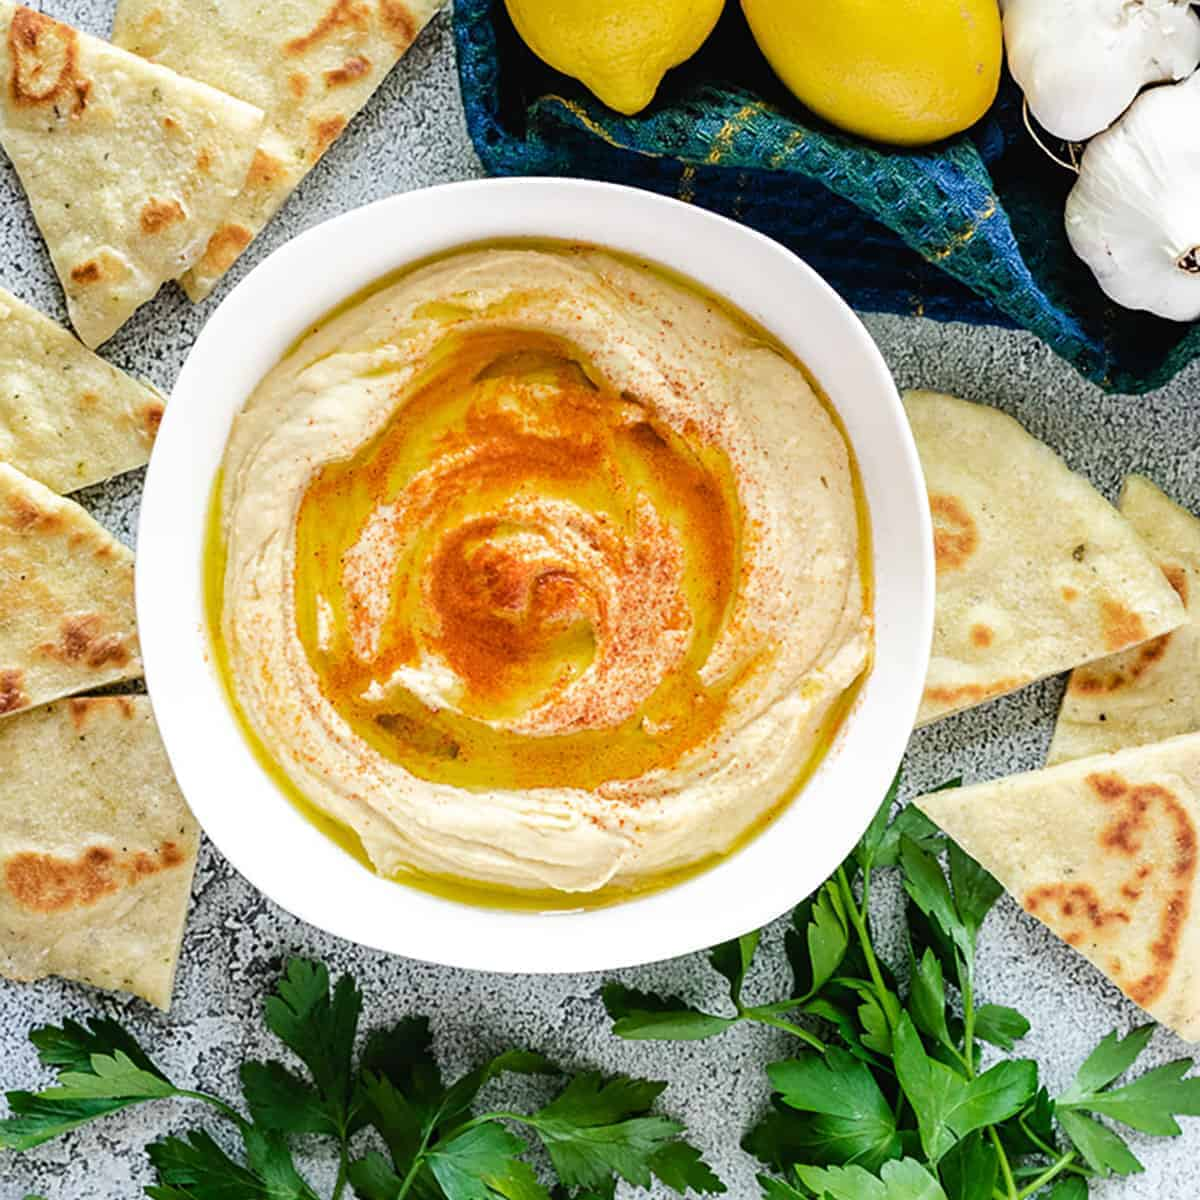 An aerial shot of the roasted garlic hummus served with flatbread.